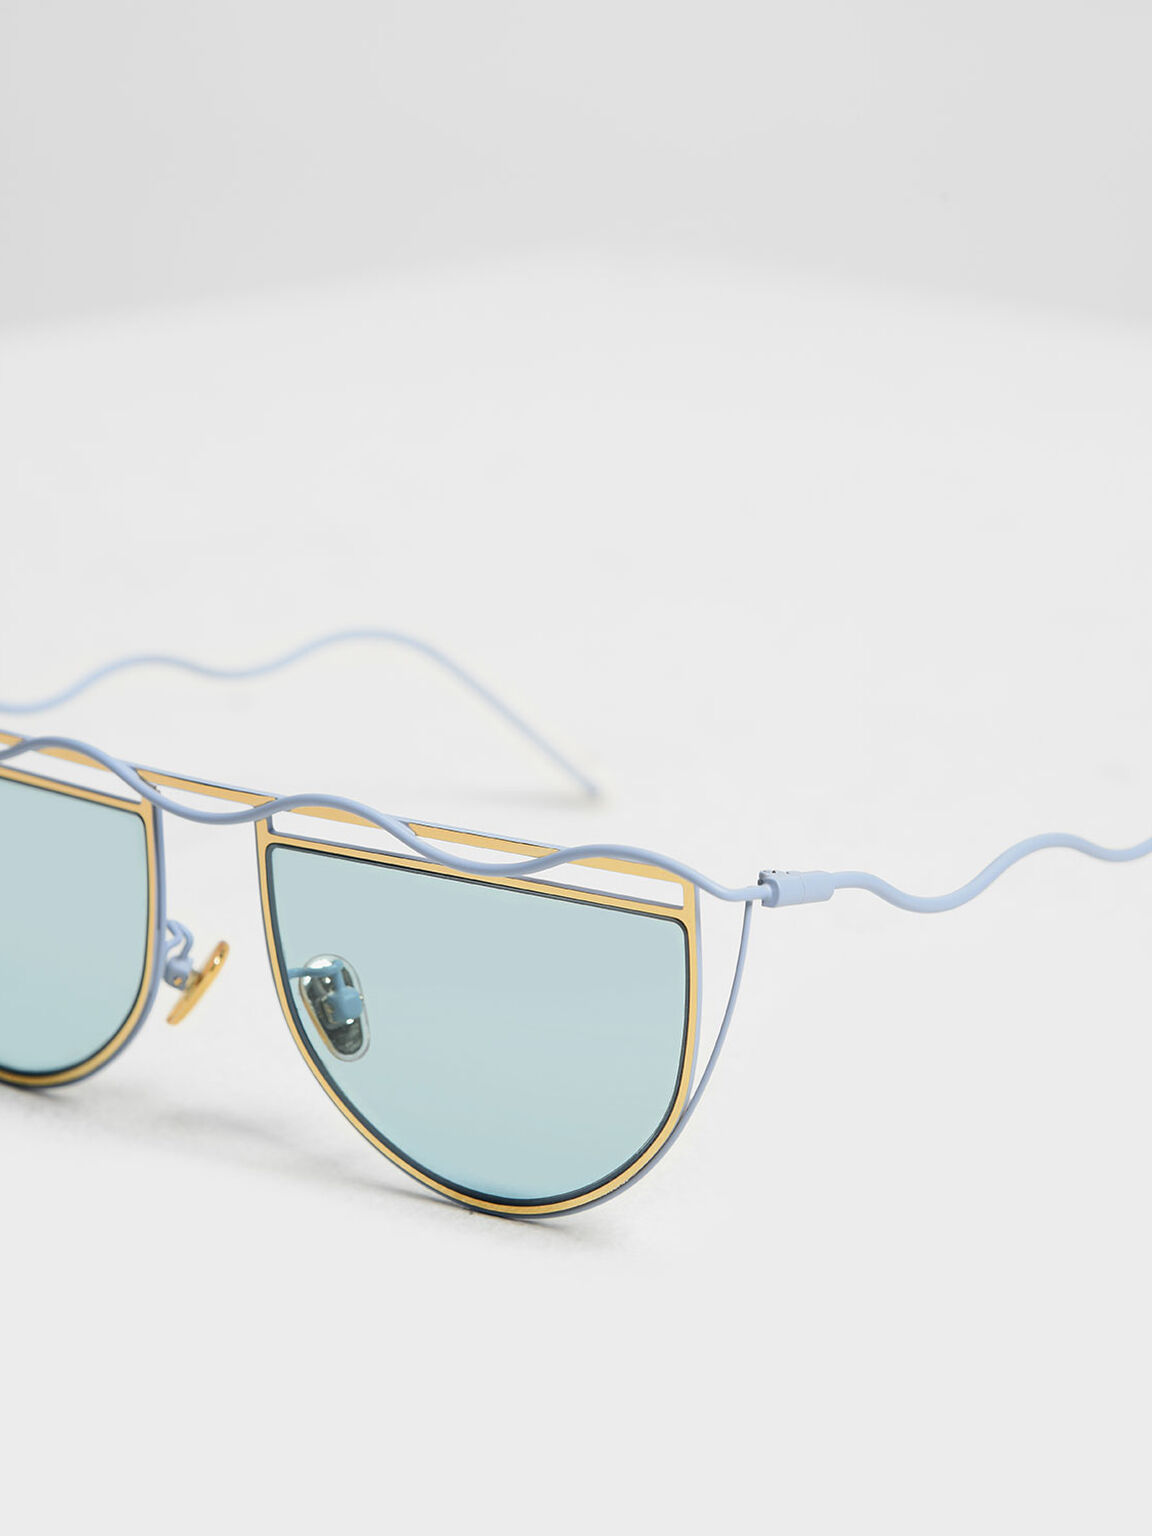 Drop Temple Semi-Circle Sunglasses, Blue, hi-res